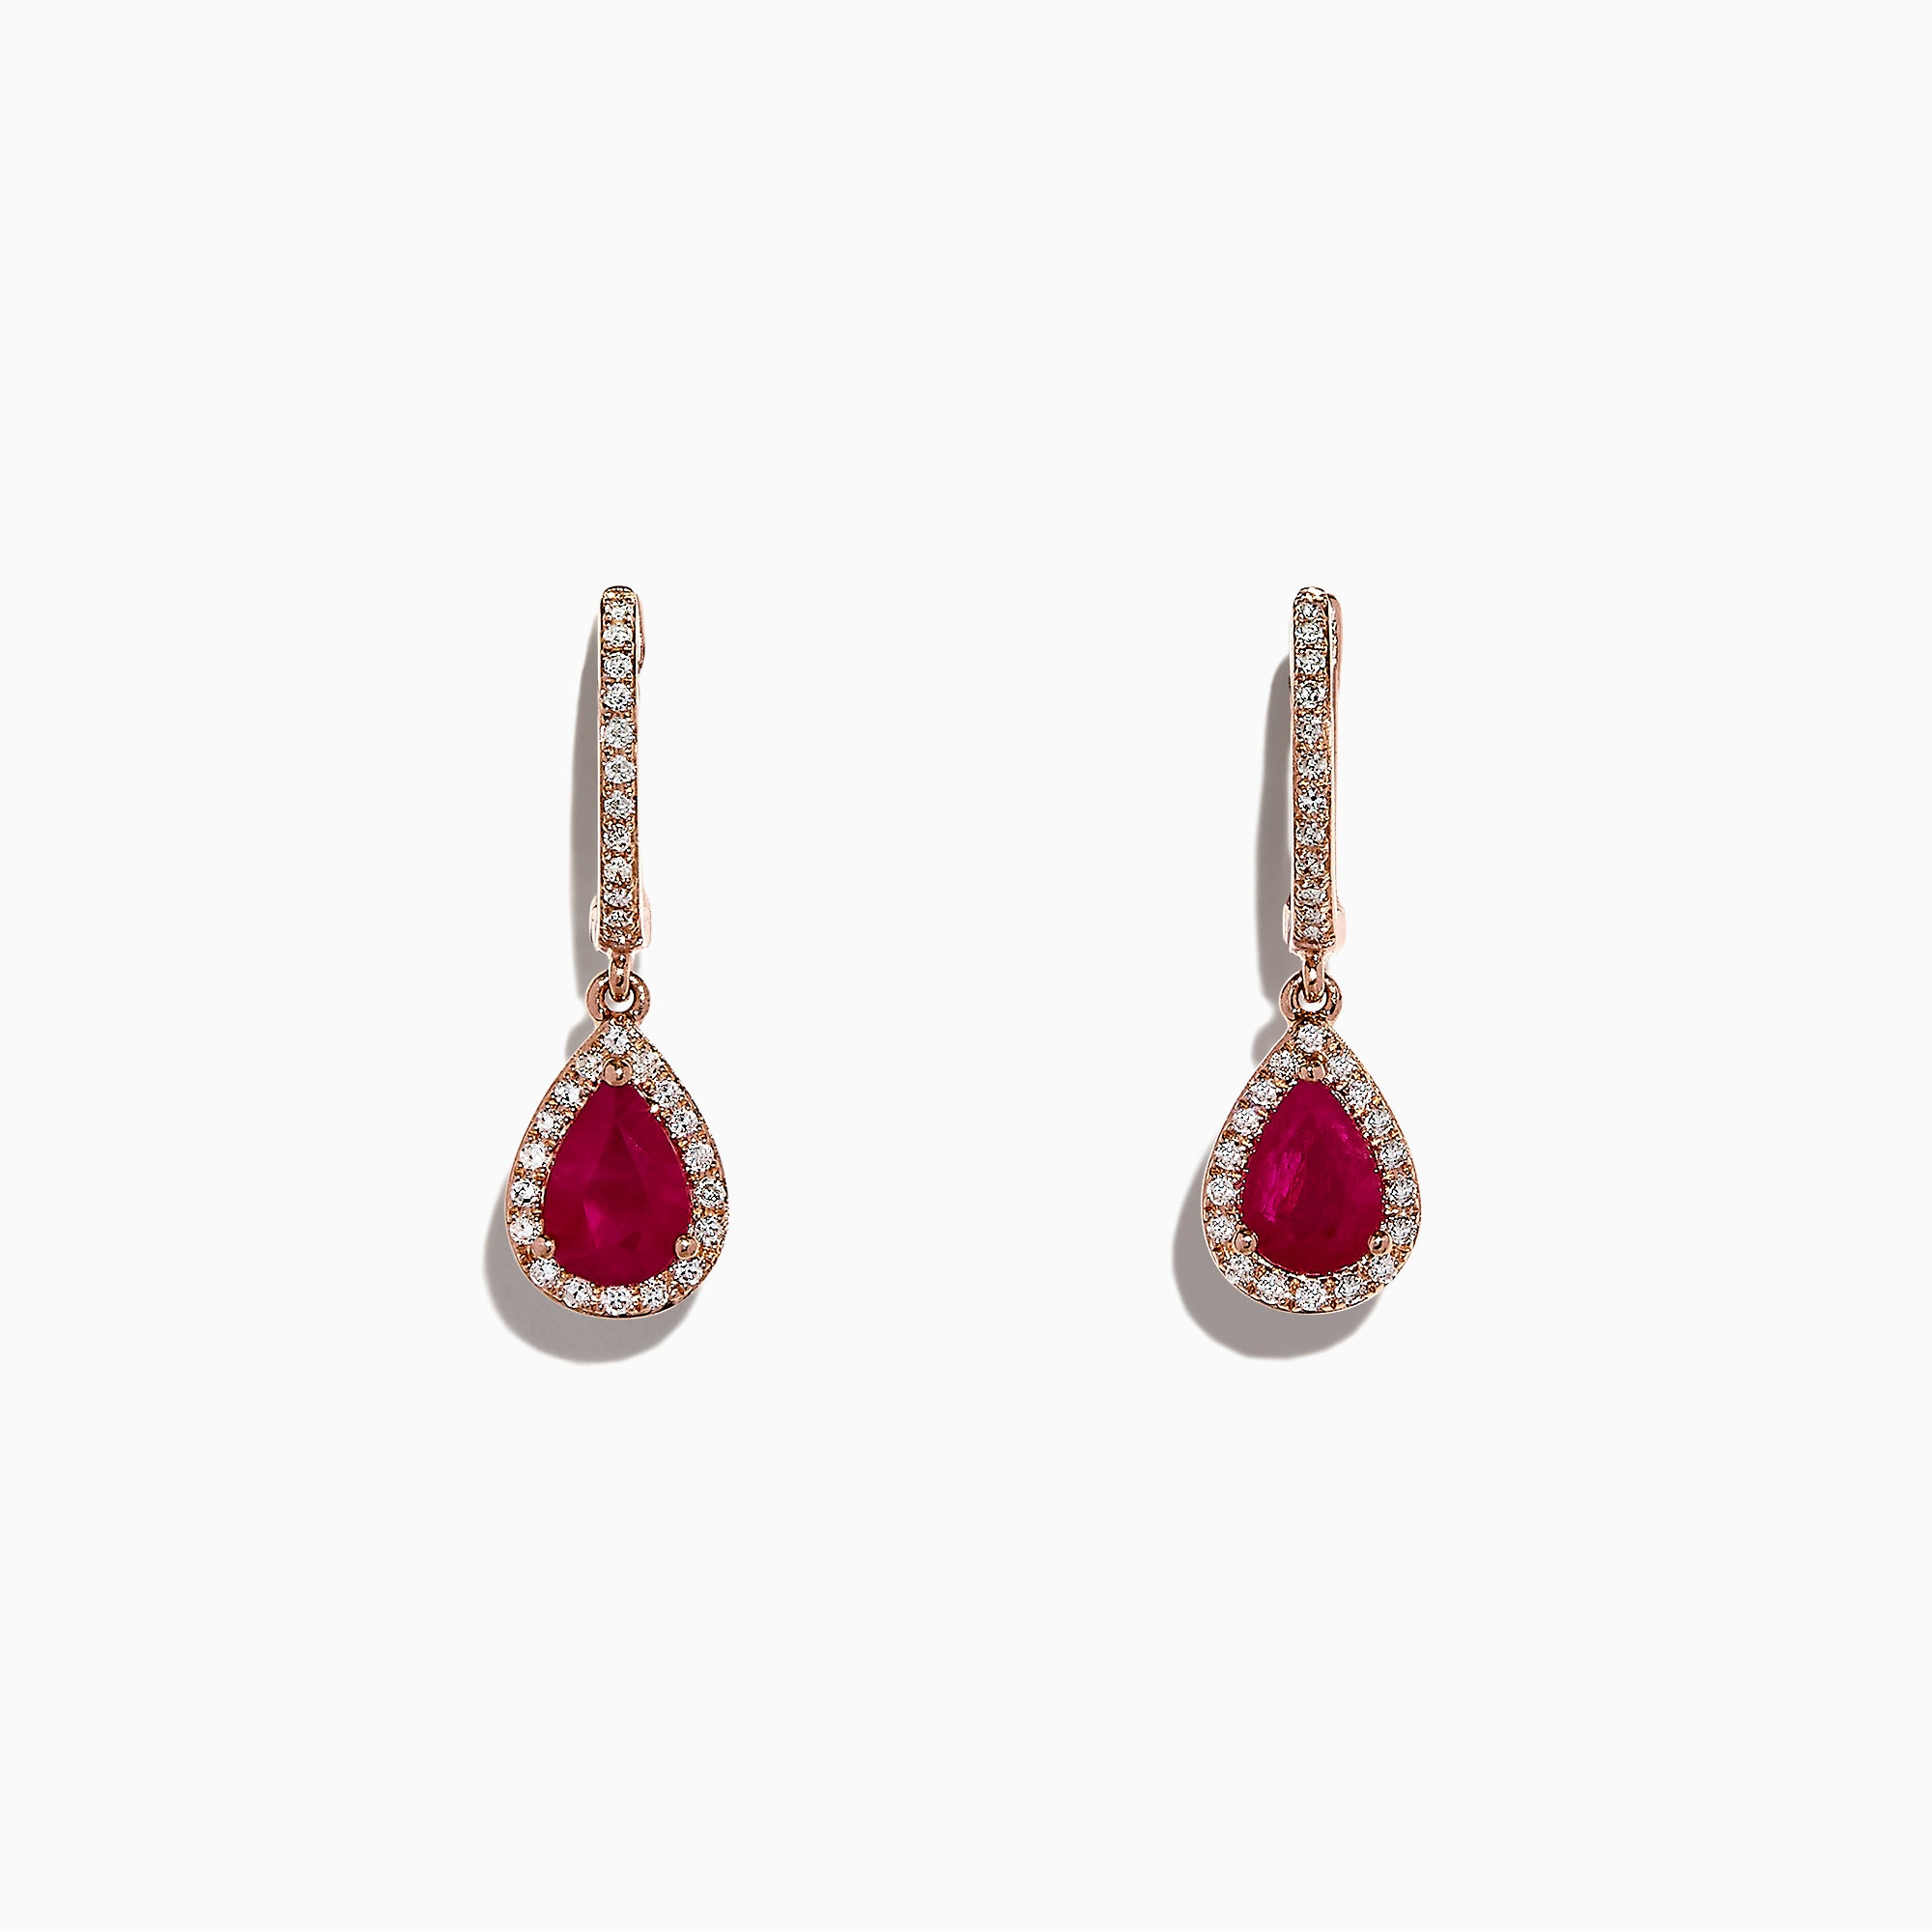 Effy 14K Rose Gold Ruby and Diamond Drop Earrings, 1.68 TCW